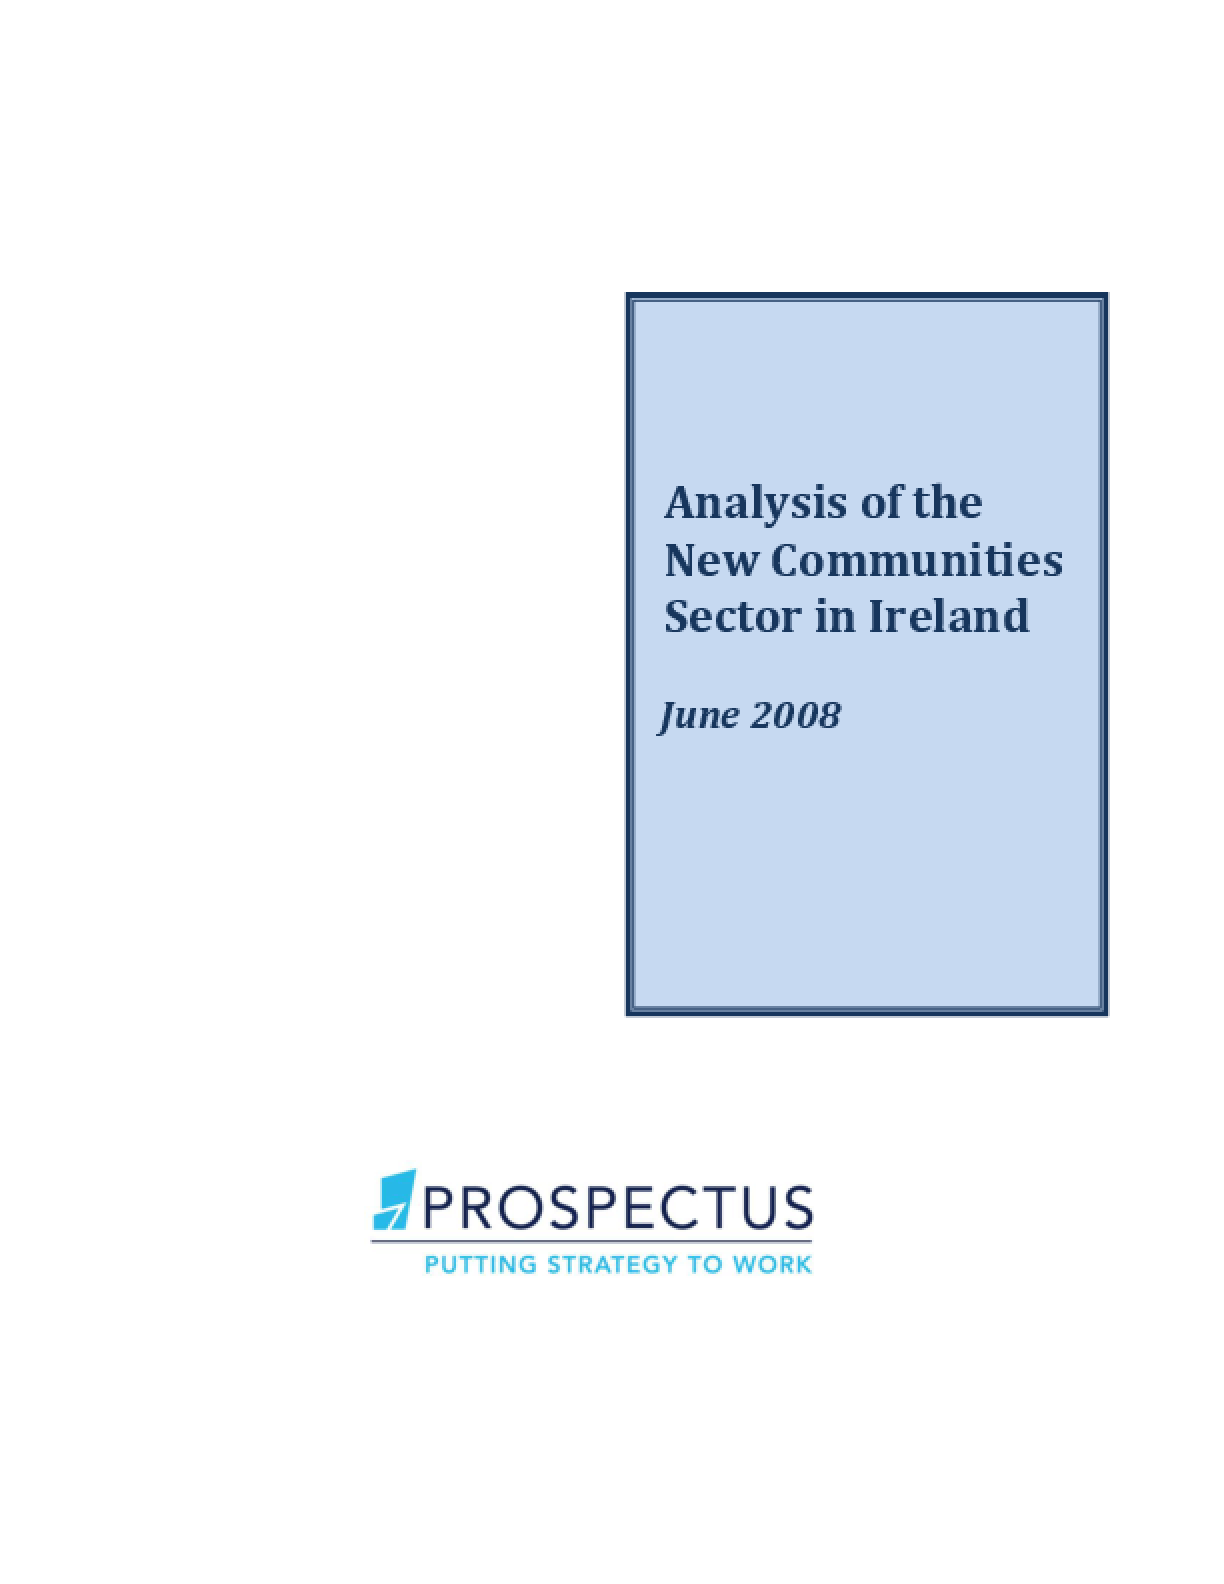 Analysis of the New Communities Sector in Ireland